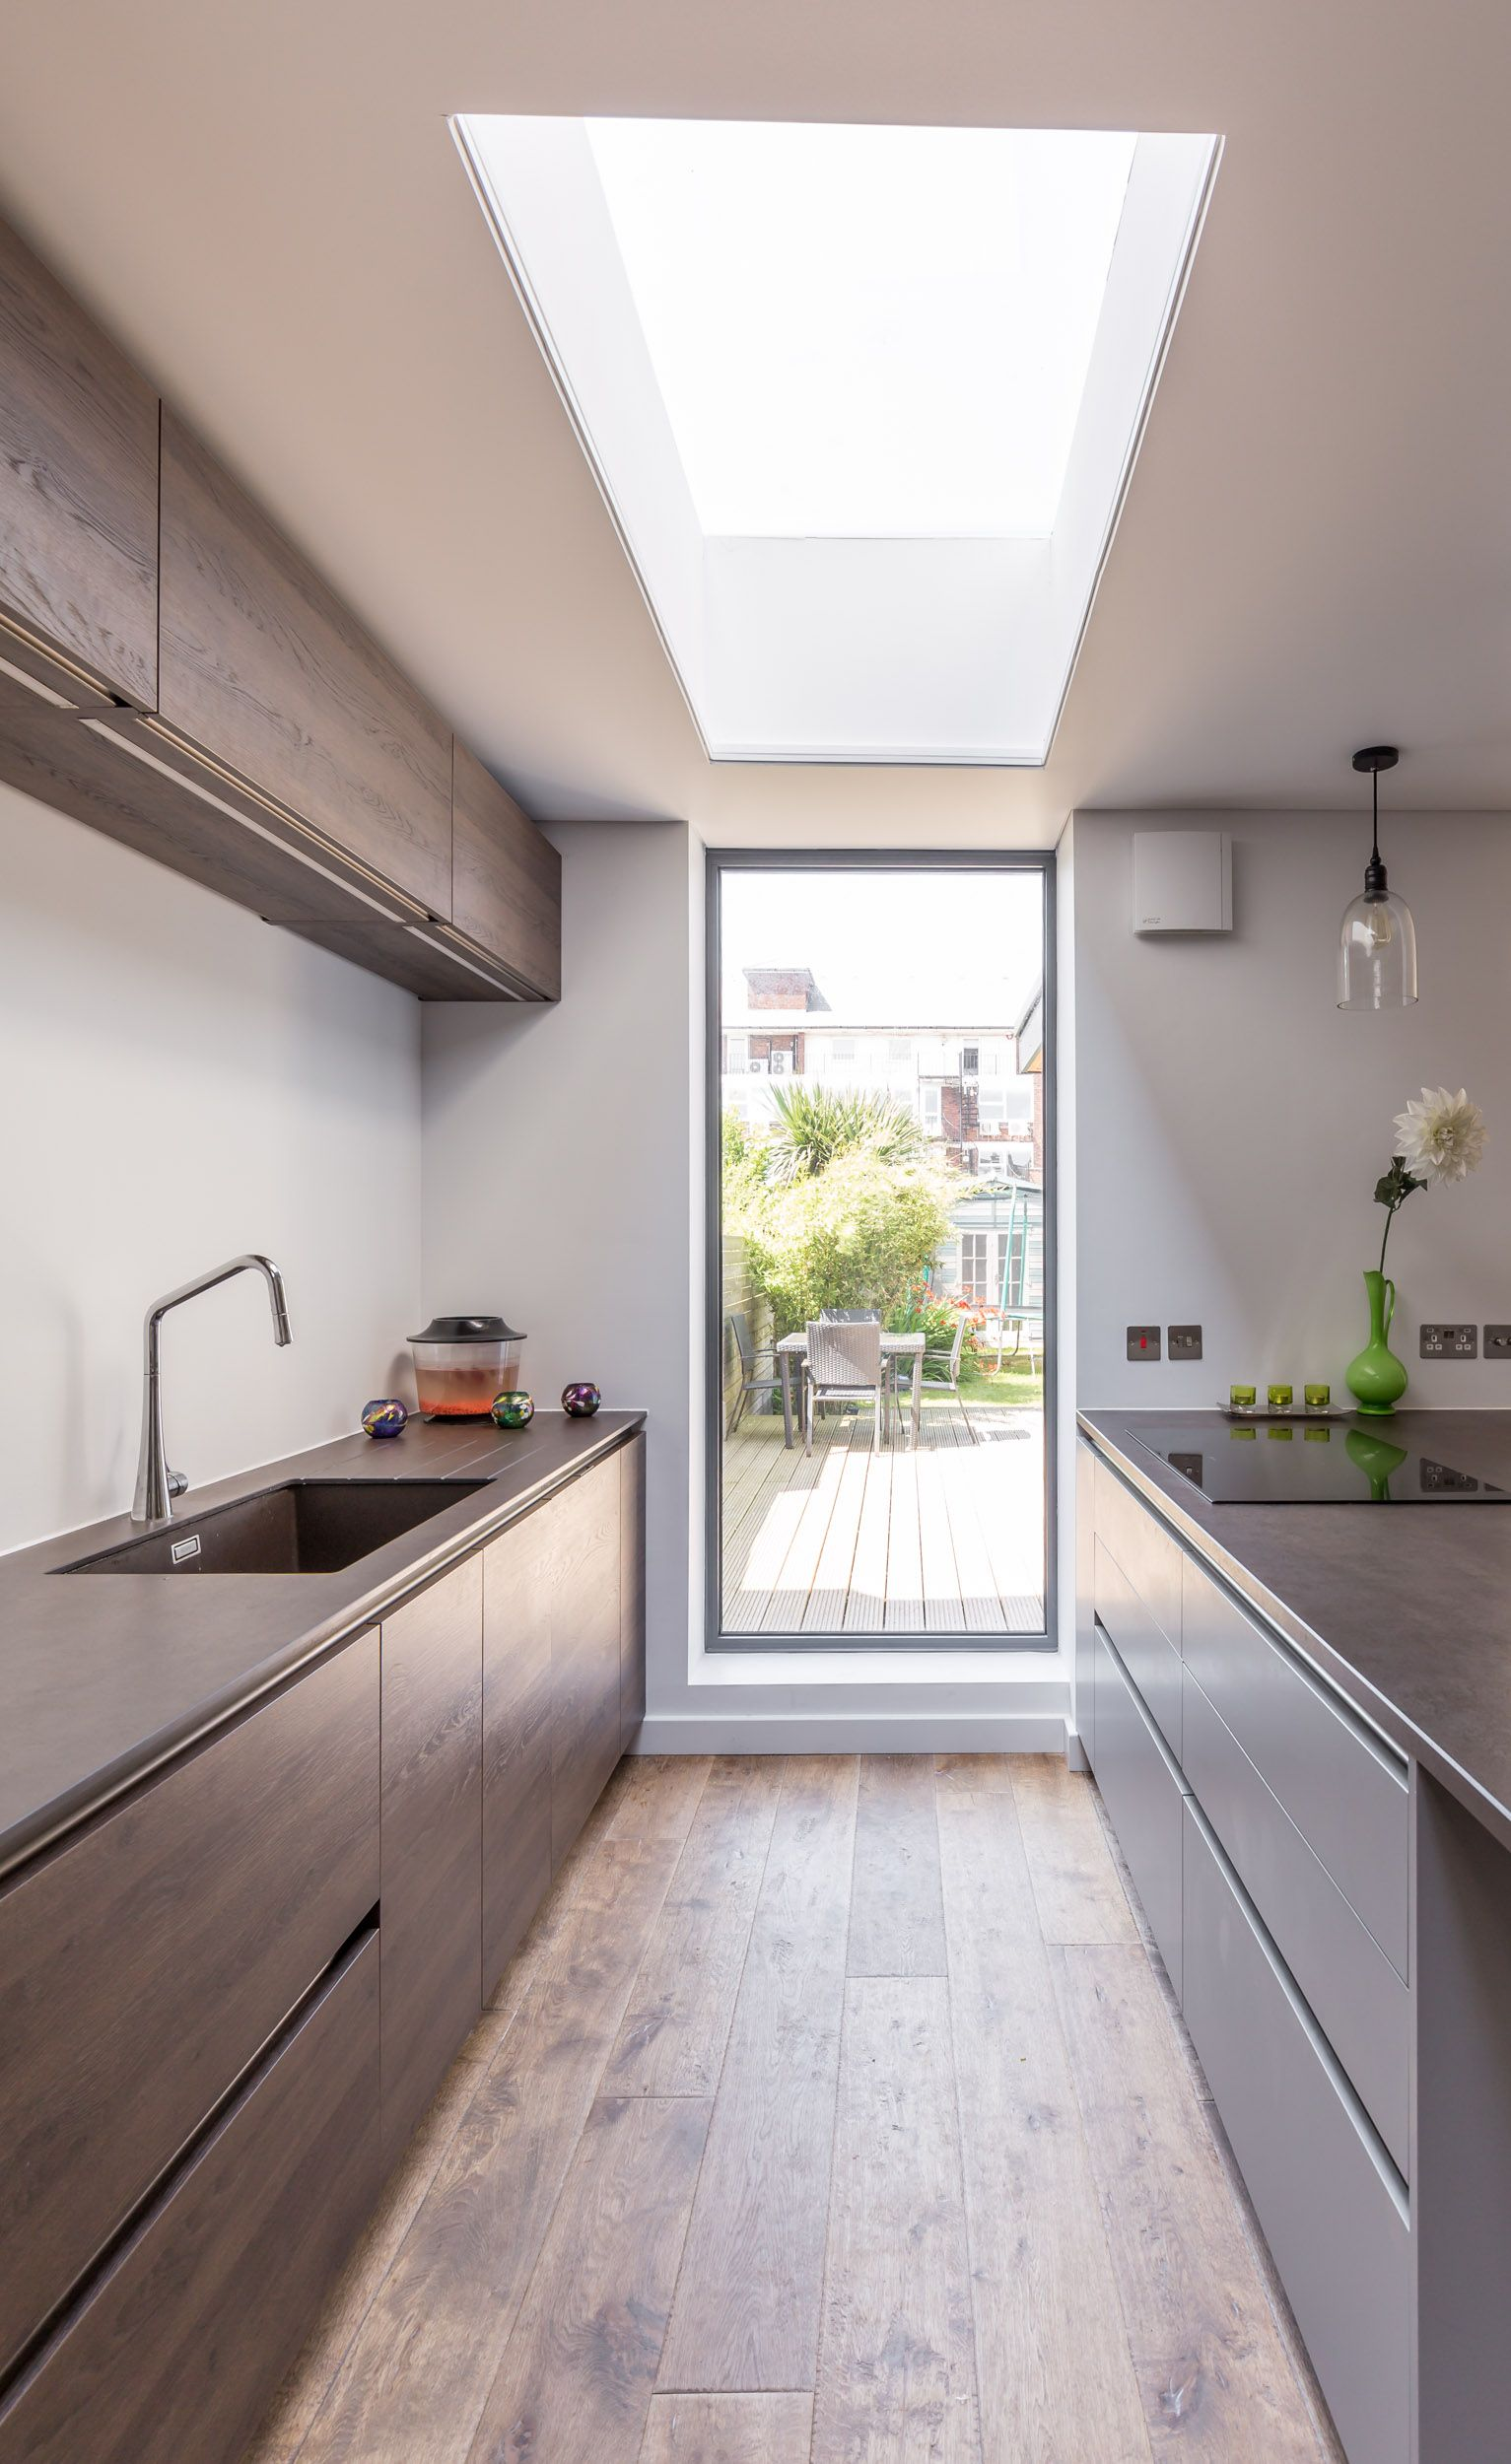 Modern kitchen extension | sleek design | framed garden views | floor to ceiling window | flat rooflight